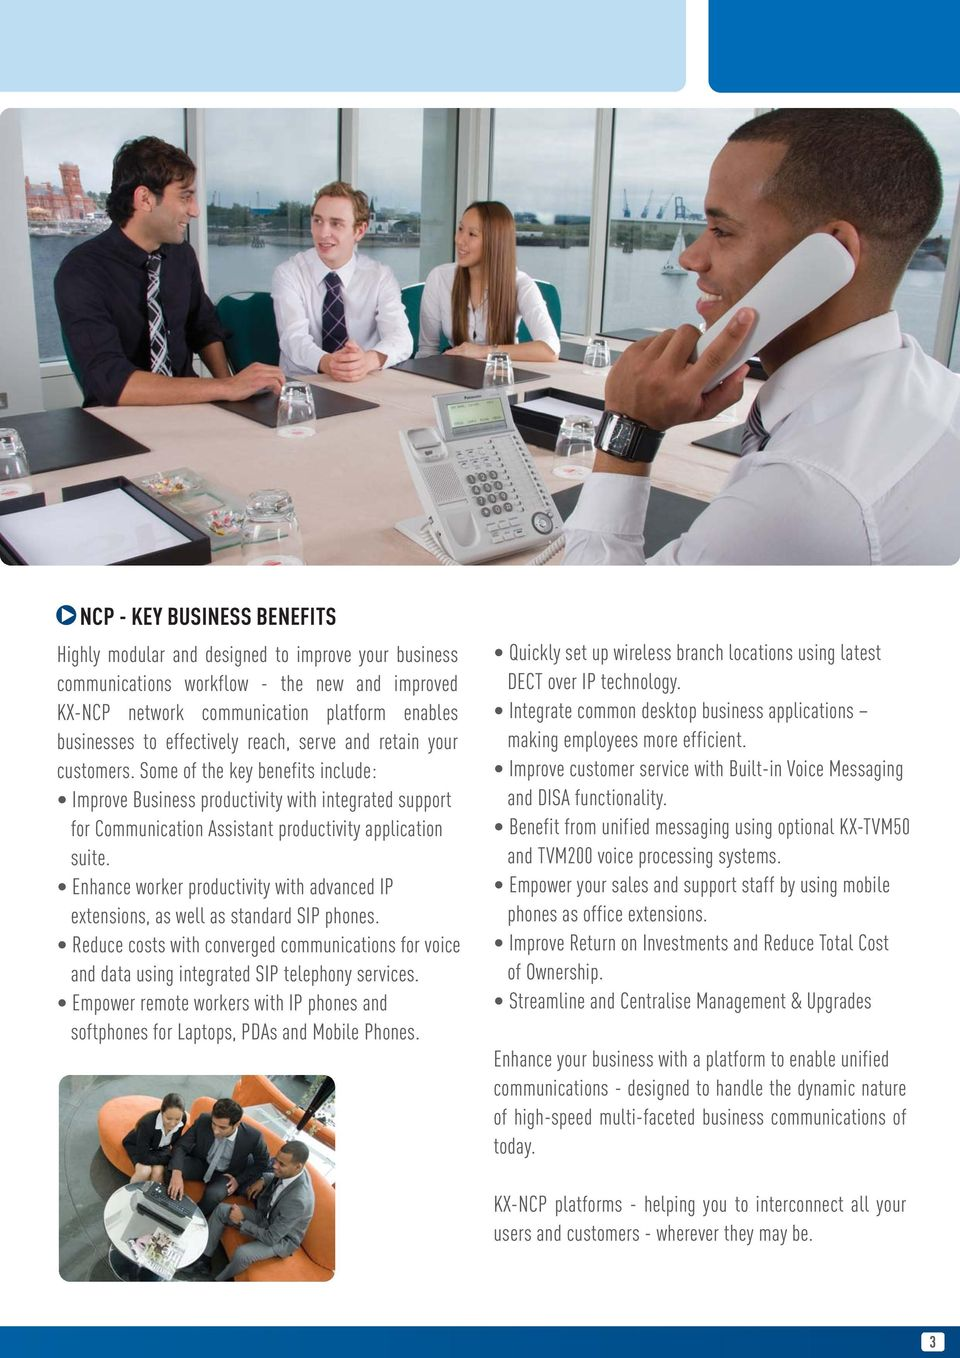 Enhance worker productivity with advanced IP extensions, as well as standard SIP phones. Reduce costs with converged communications for voice and data using integrated SIP telephony services.